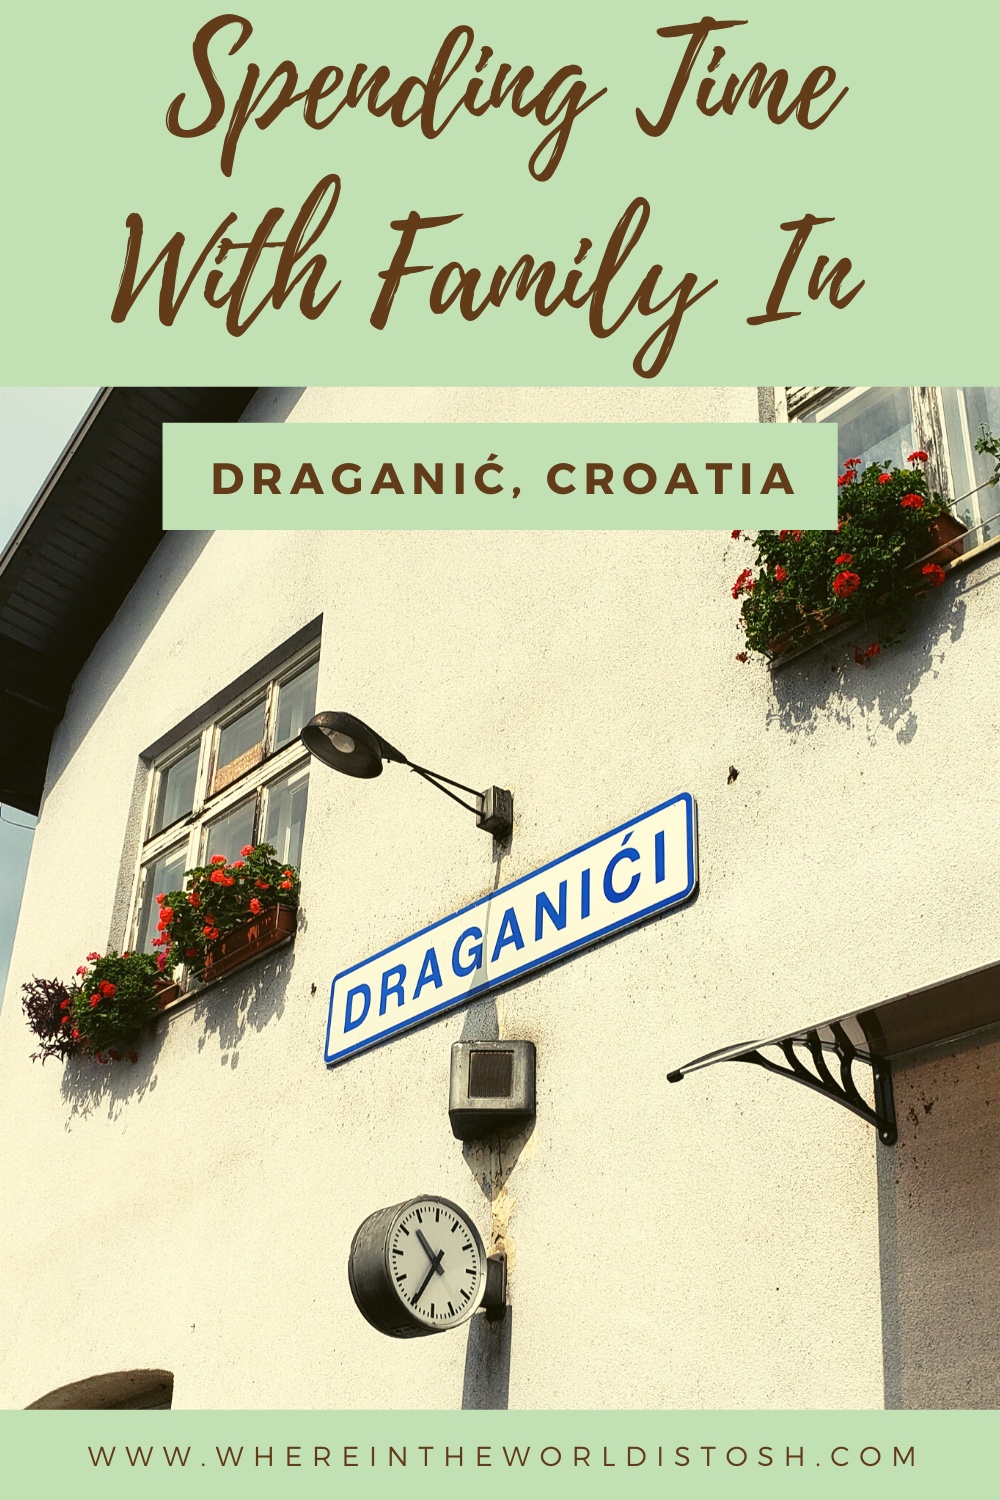 Spending Time In Draganic, Croatia